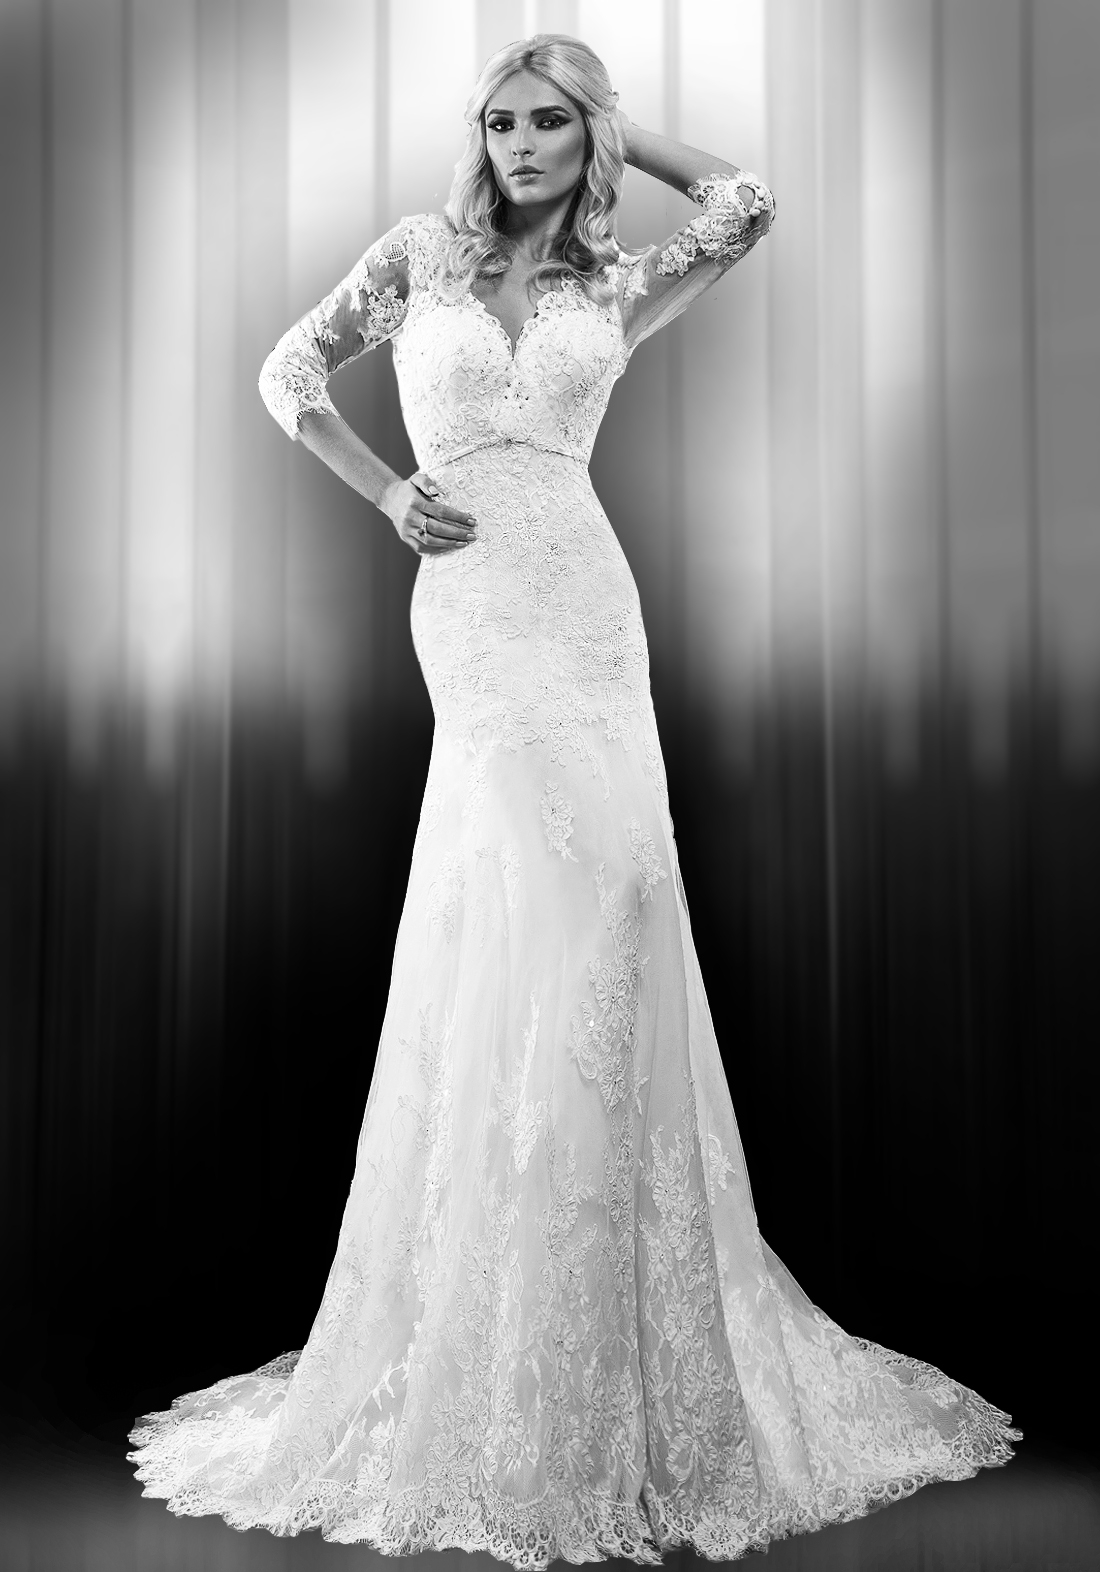 bien-savvy-wedding-dresses-2014-collection-8-01232014